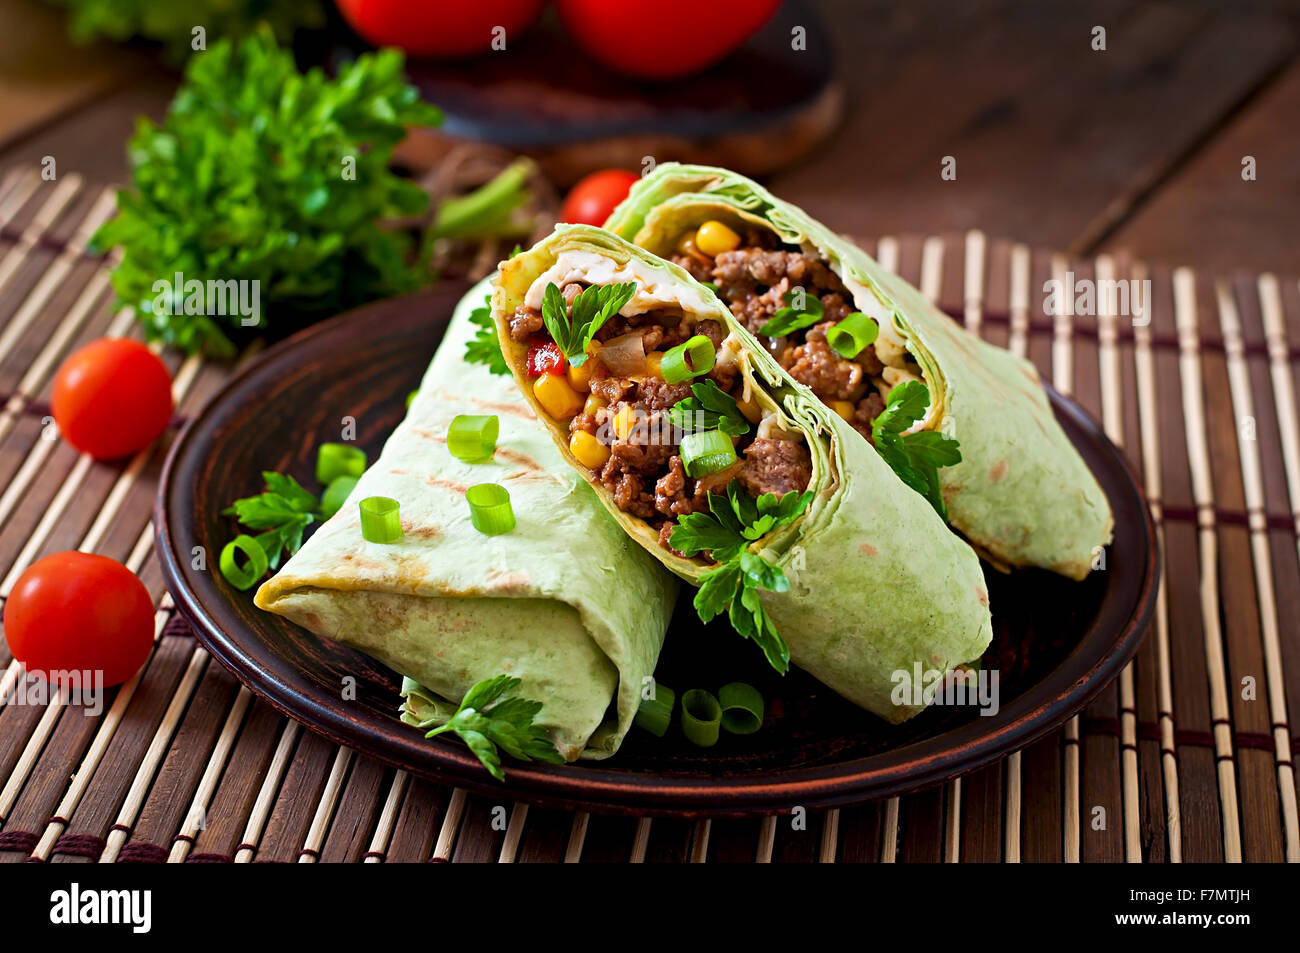 Burritos wraps with minced beef and vegetables on a wooden background - Stock Image